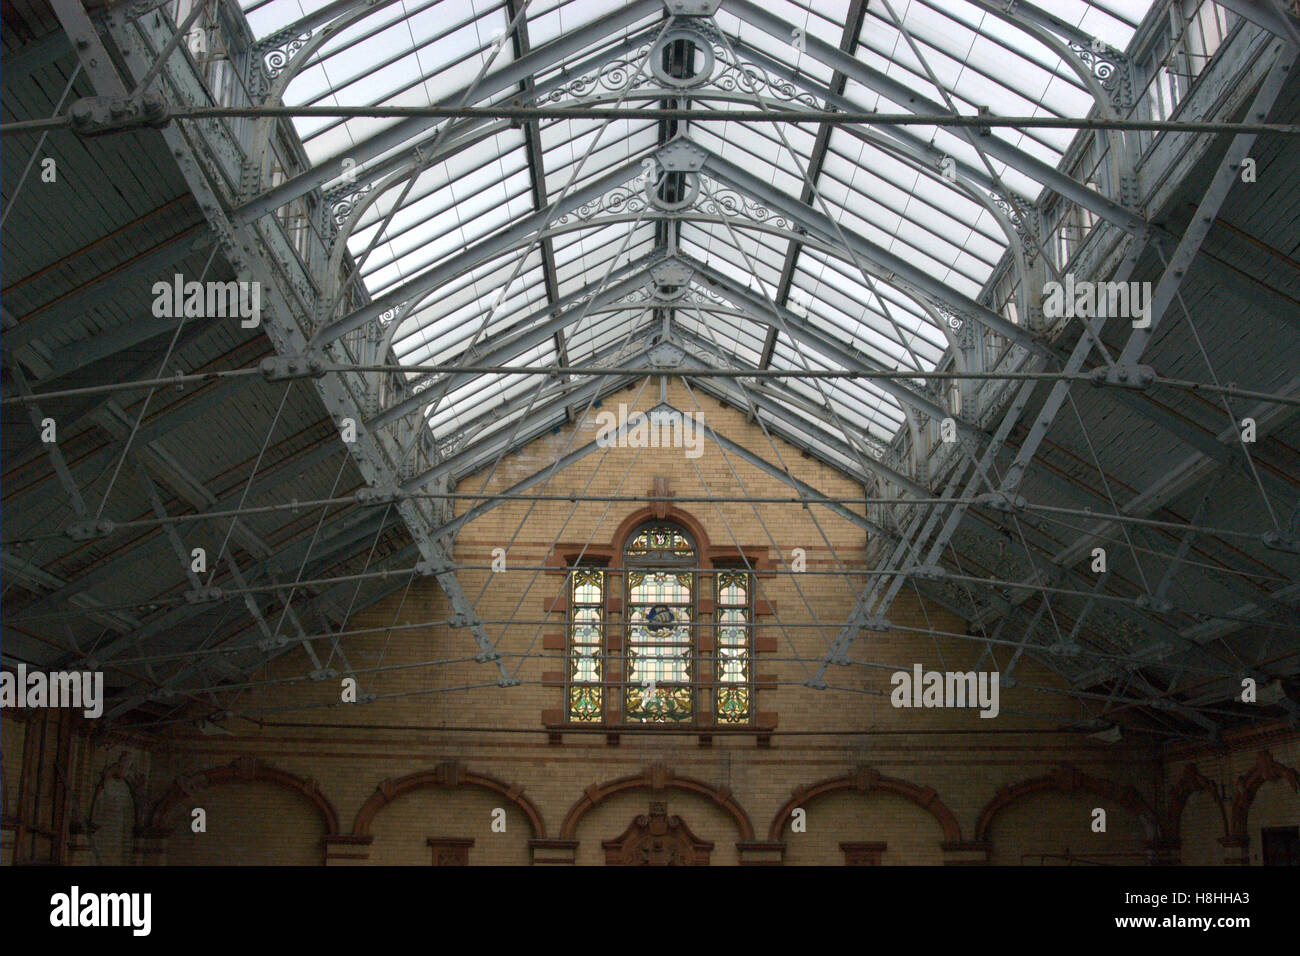 Roof Lights, Victoria Baths, Manchester - Stock Image